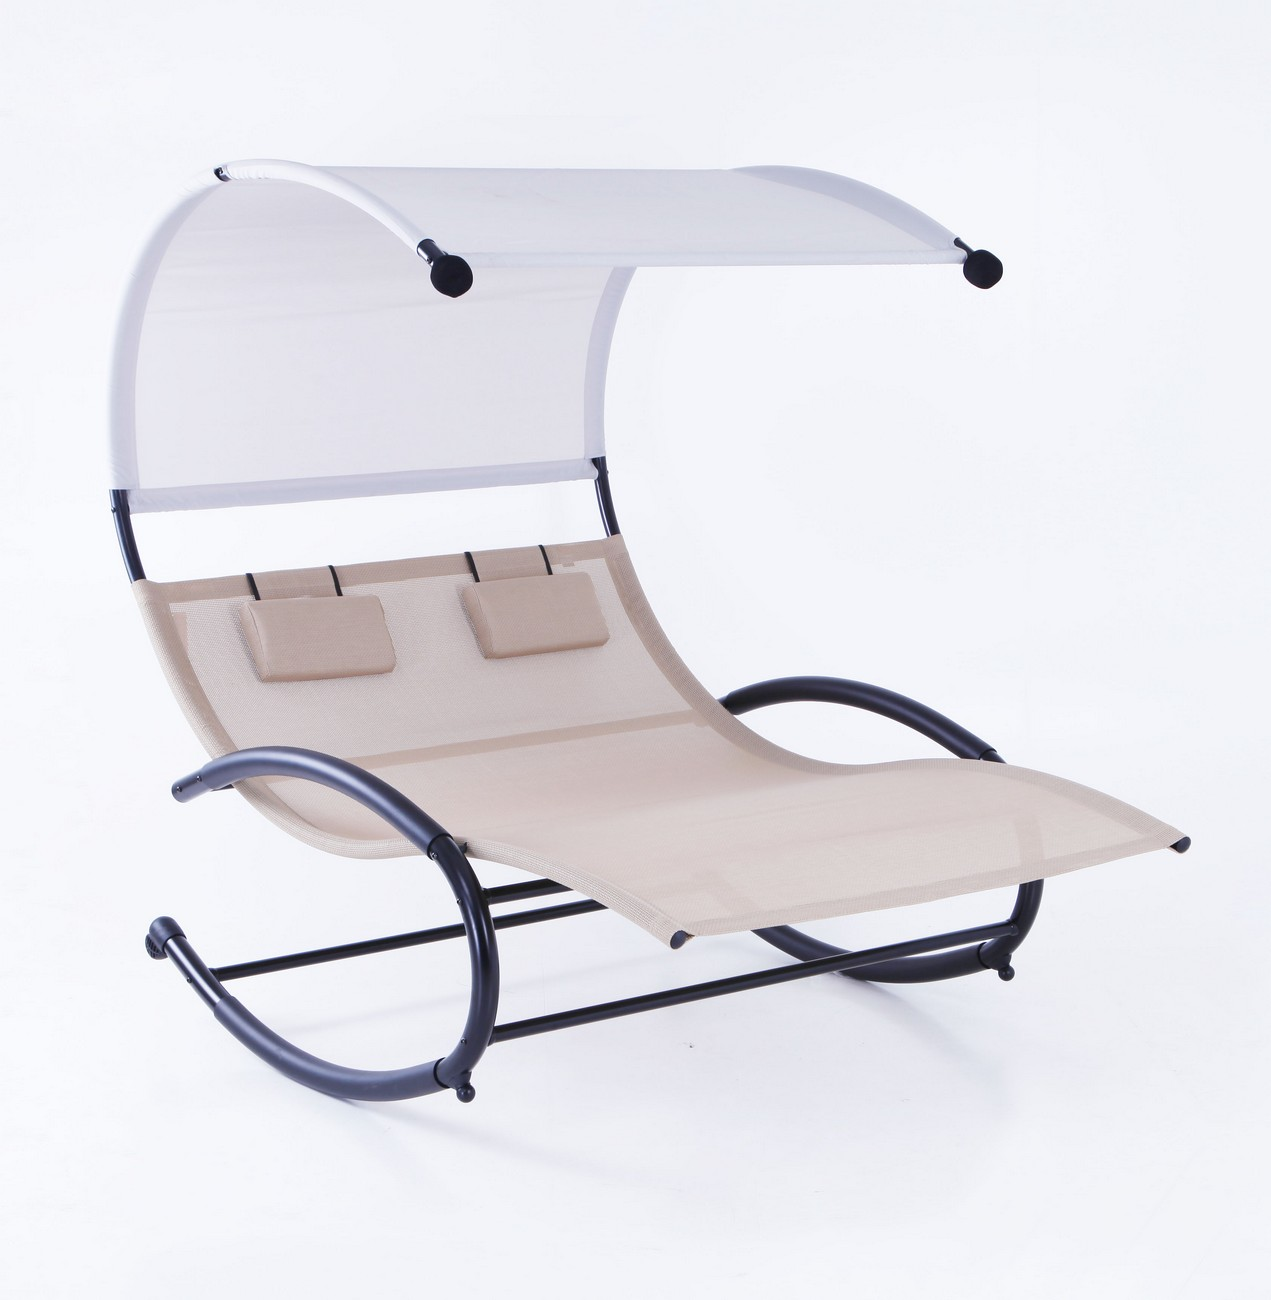 Belleze Double Chaise Rocker Patio Furniture Chair Canopy Pool